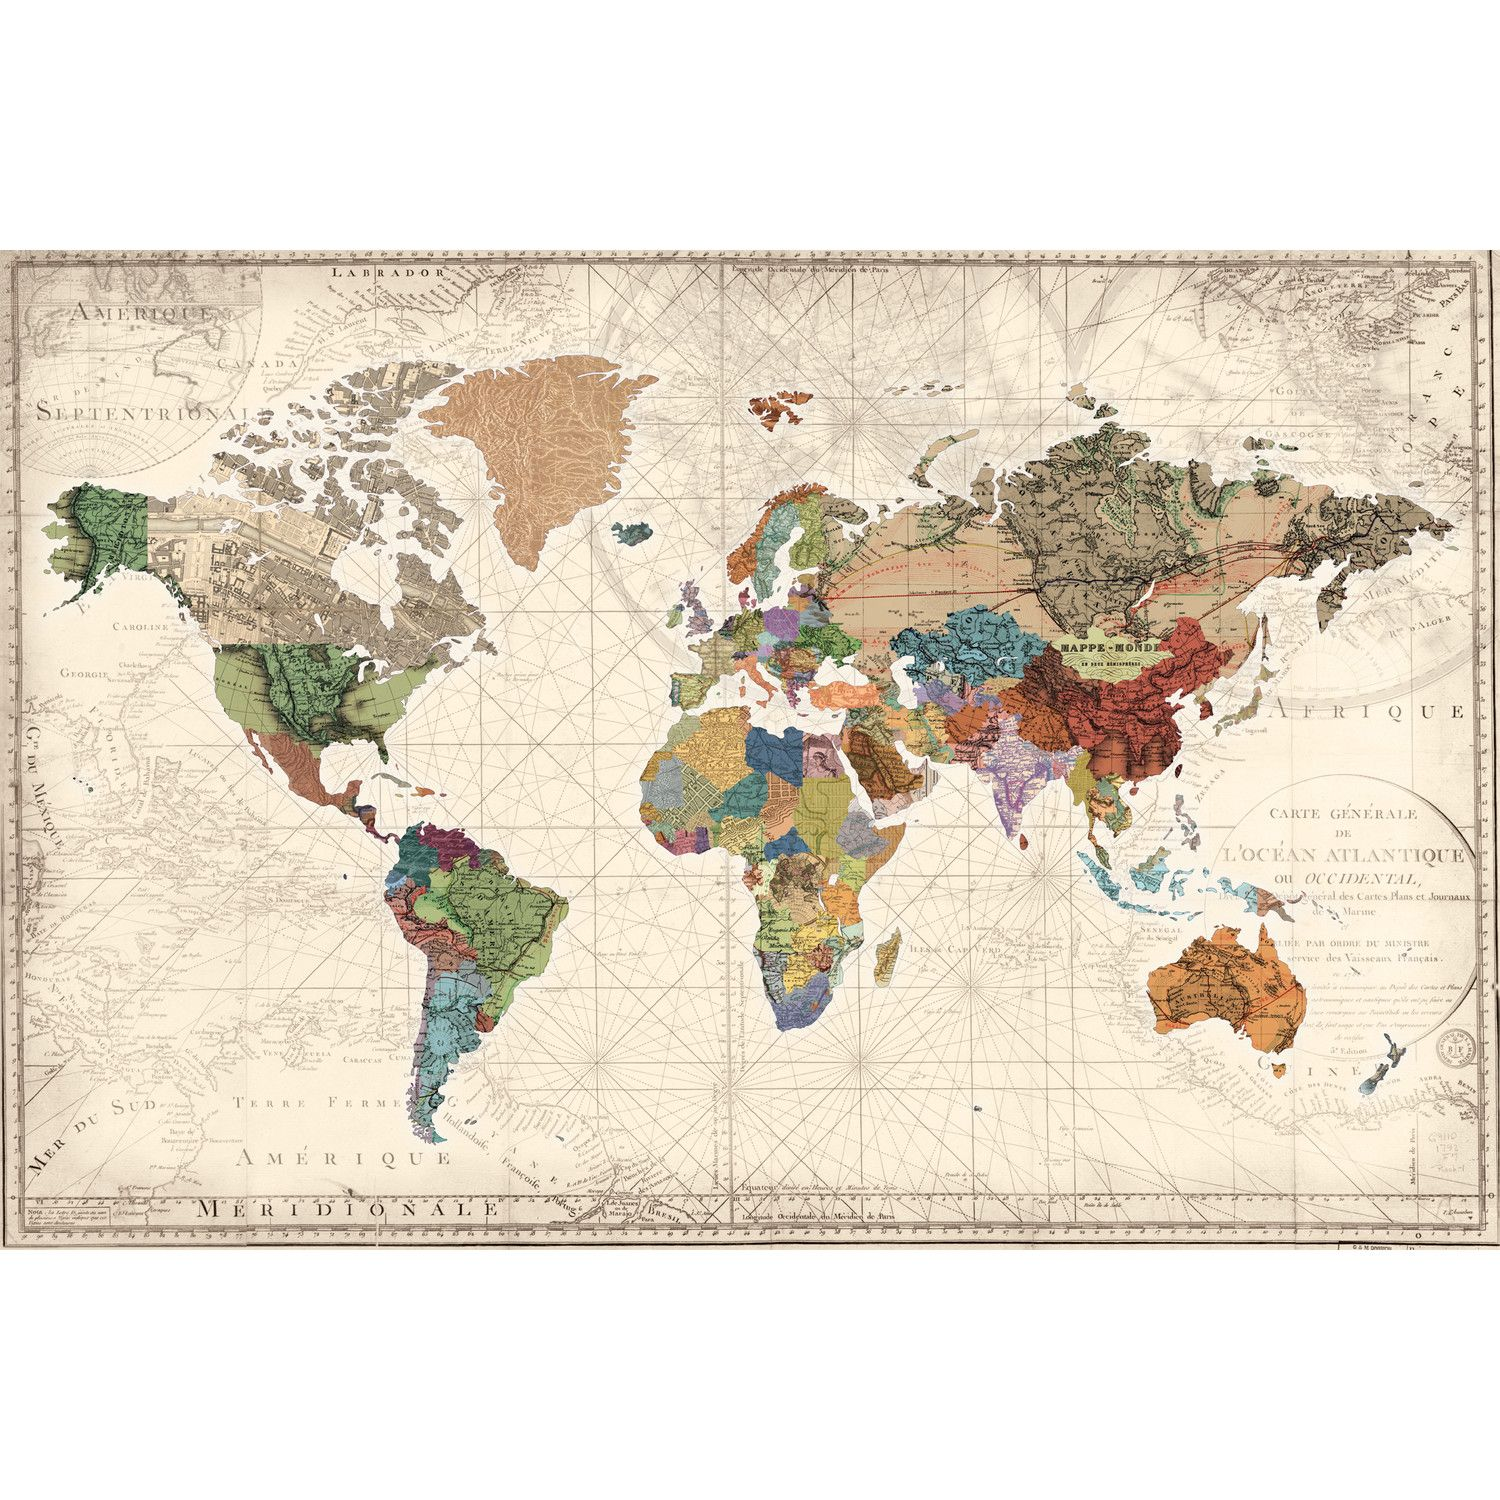 Amazon world map photo wallpaper vintage retro motif xxl amazon world map photo wallpaper vintage retro motif xxl world map mural wall decoration inspiration pinterest mural wall sciox Images